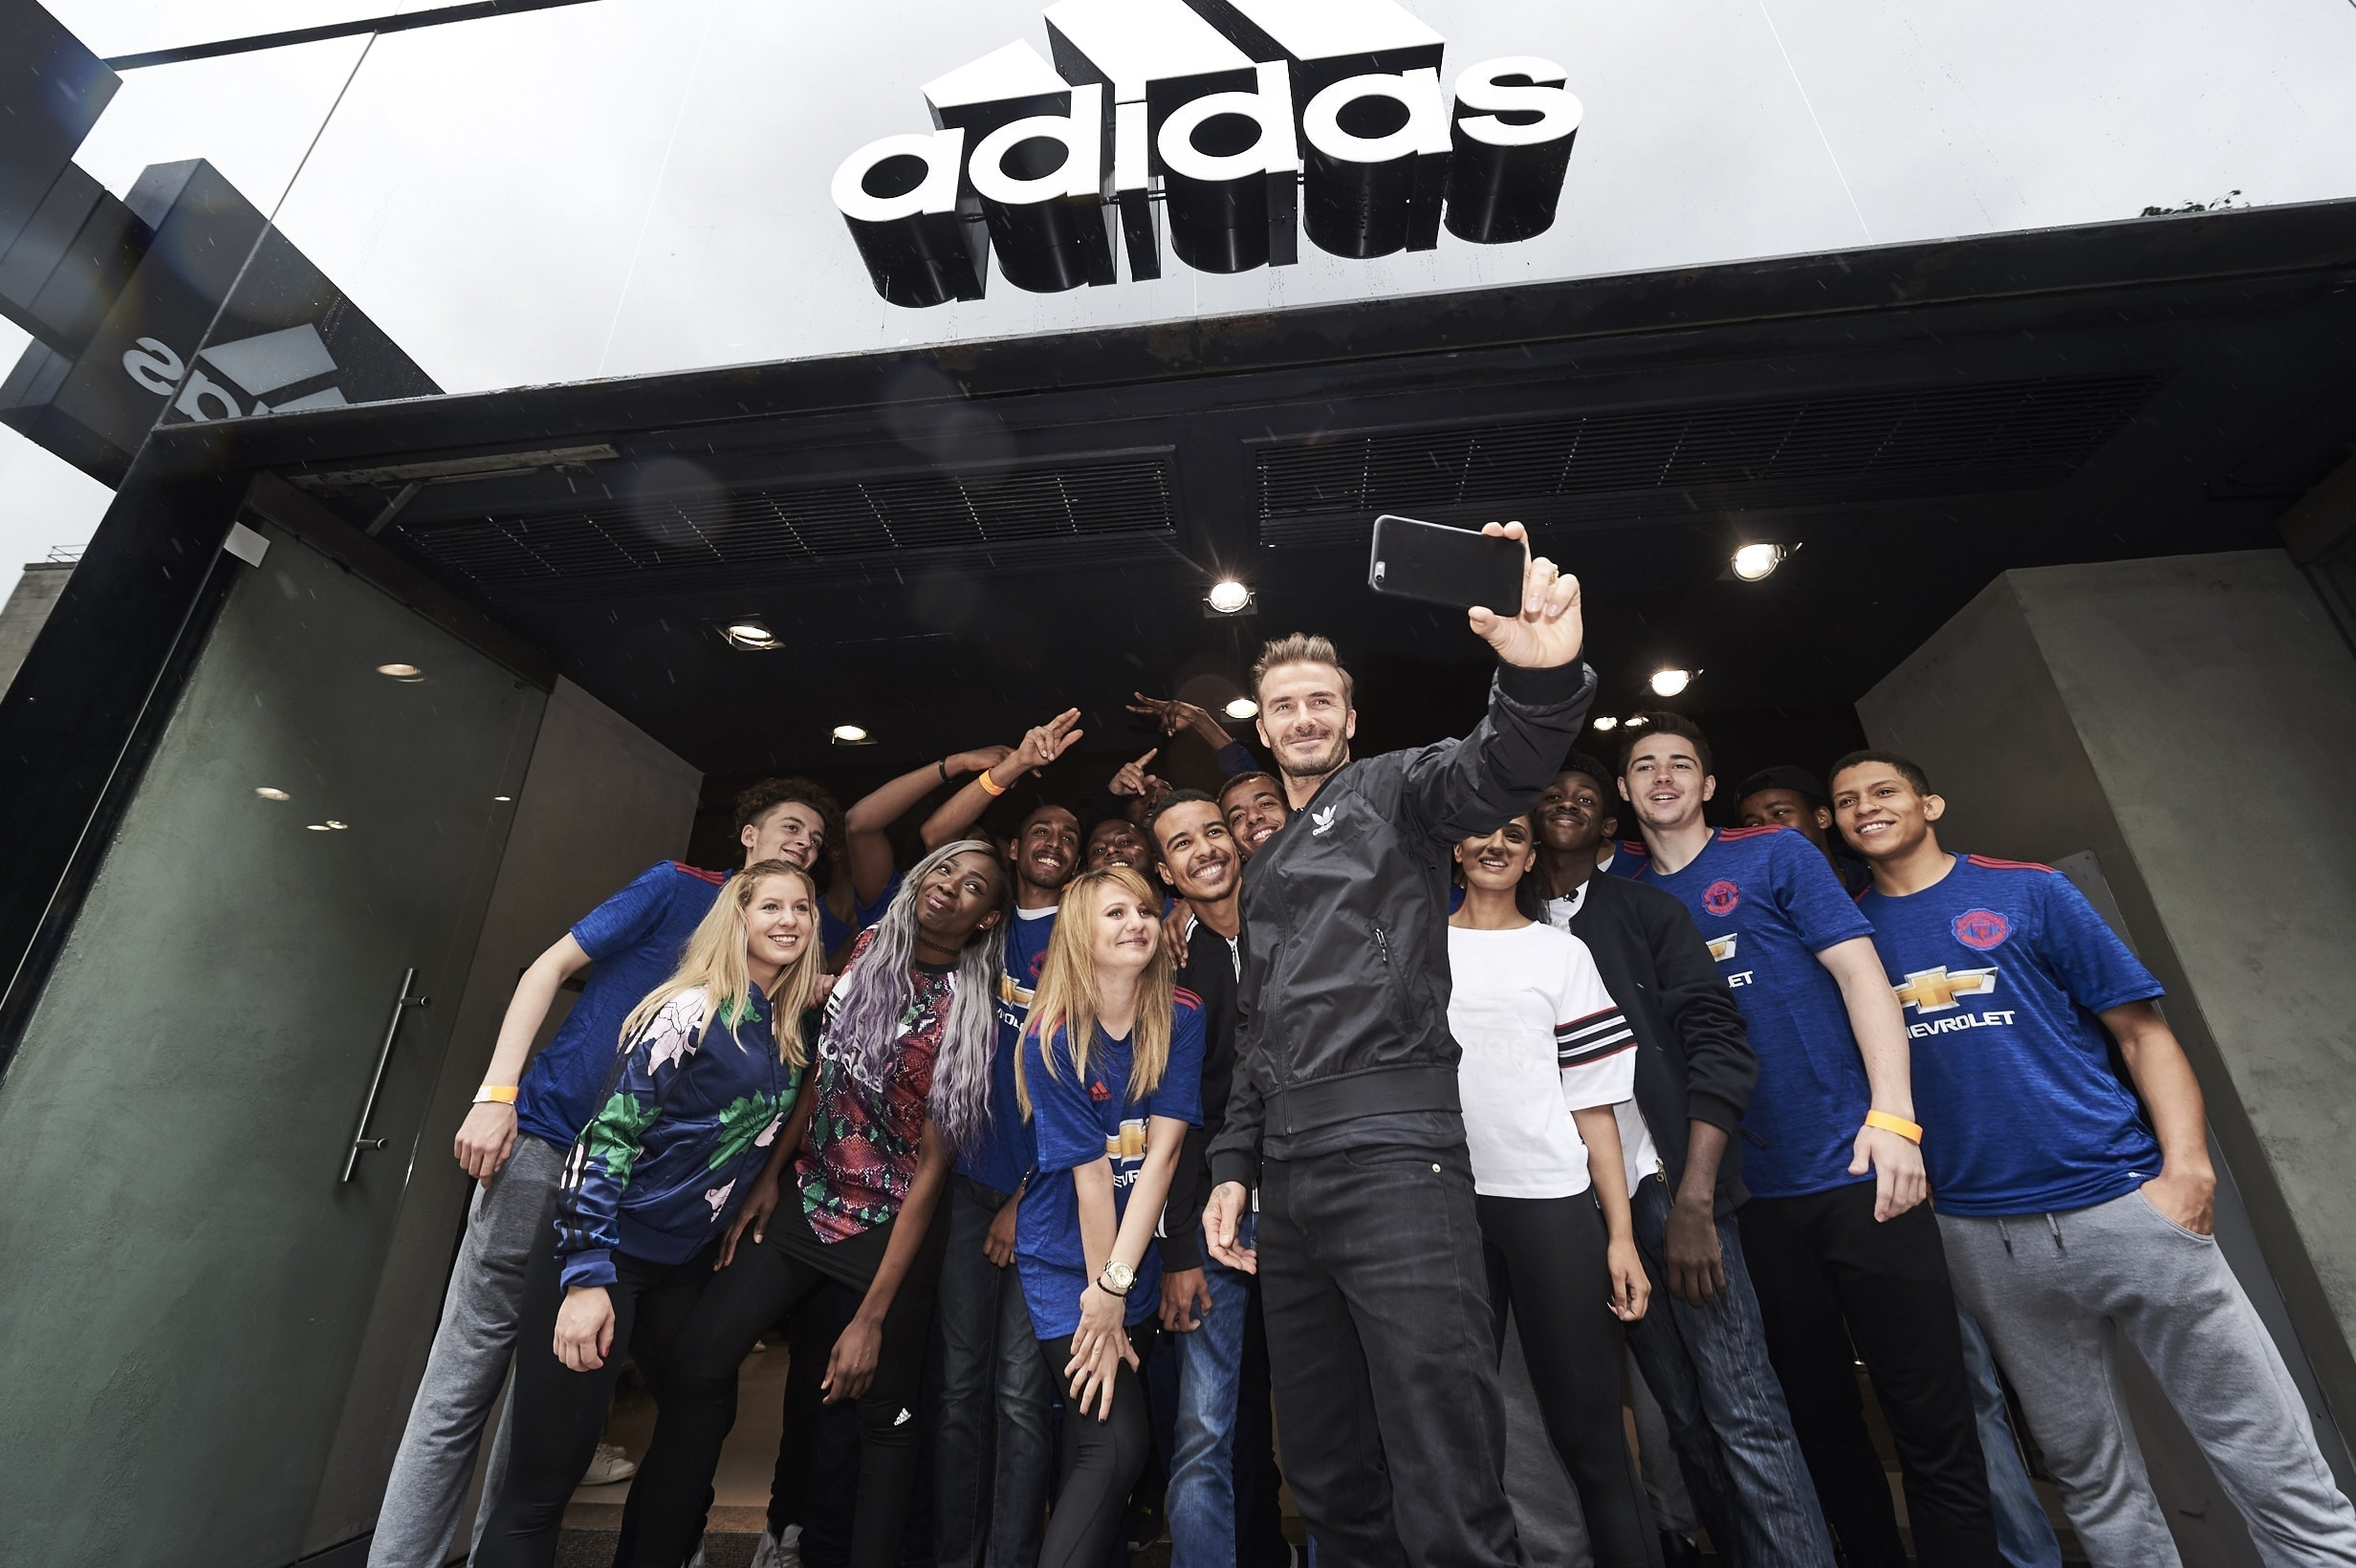 BECK IN TOWN: David Beckham meets fans outside the newly re-opened adidas store on Oxford Street. The Man Utd legend launched the club's new away shirt, available online and in-store now (Credit: Ben Duffy / adidas UK)